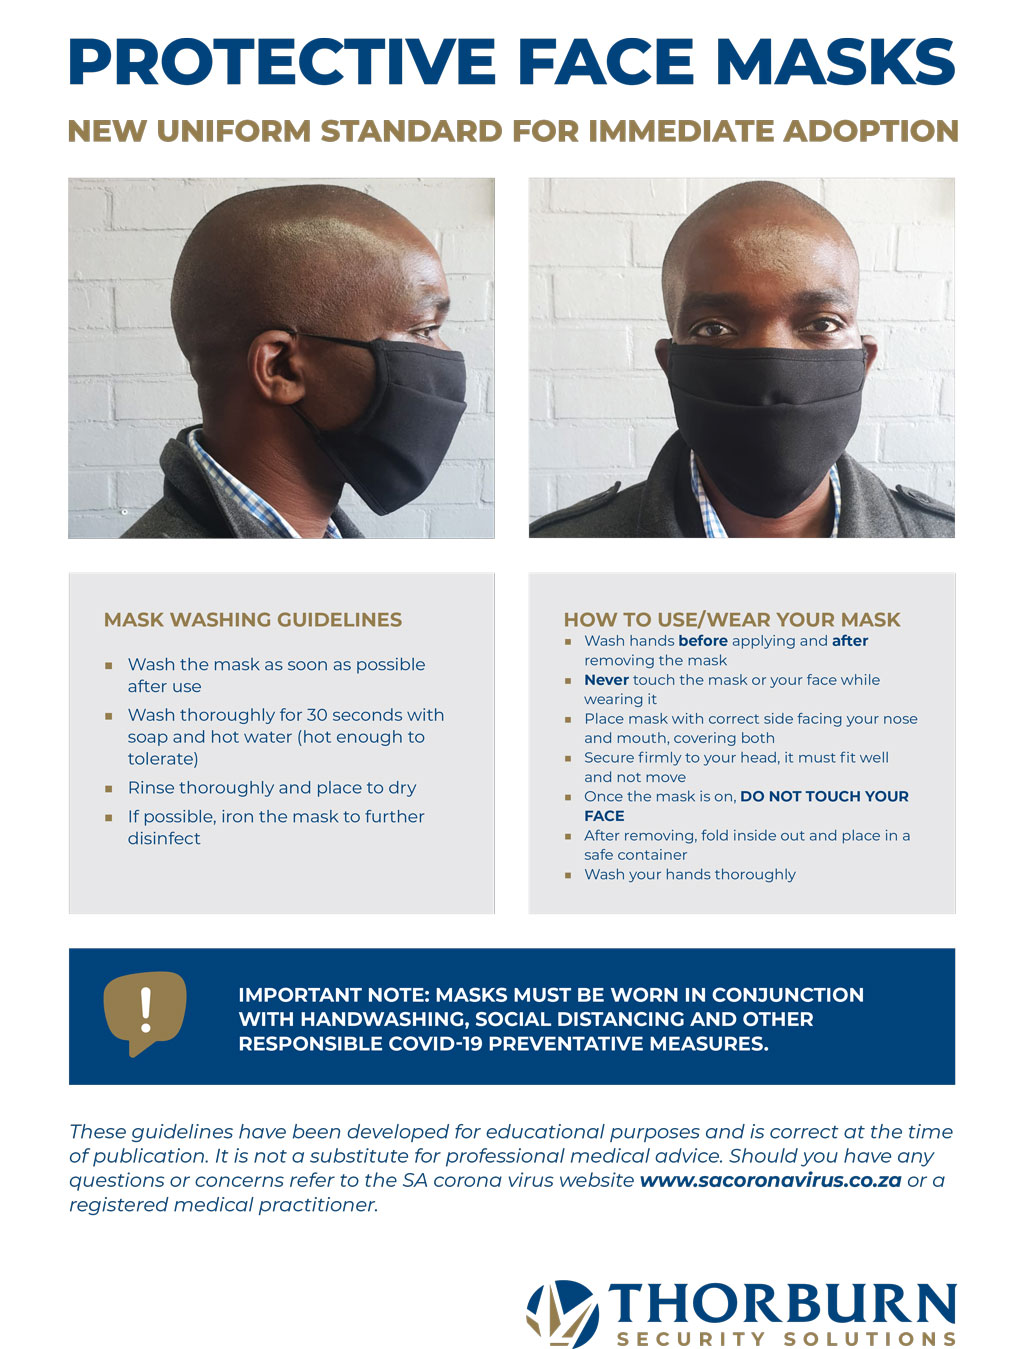 Thorburn Security Services South Africa - Our Values - Mask Protocol